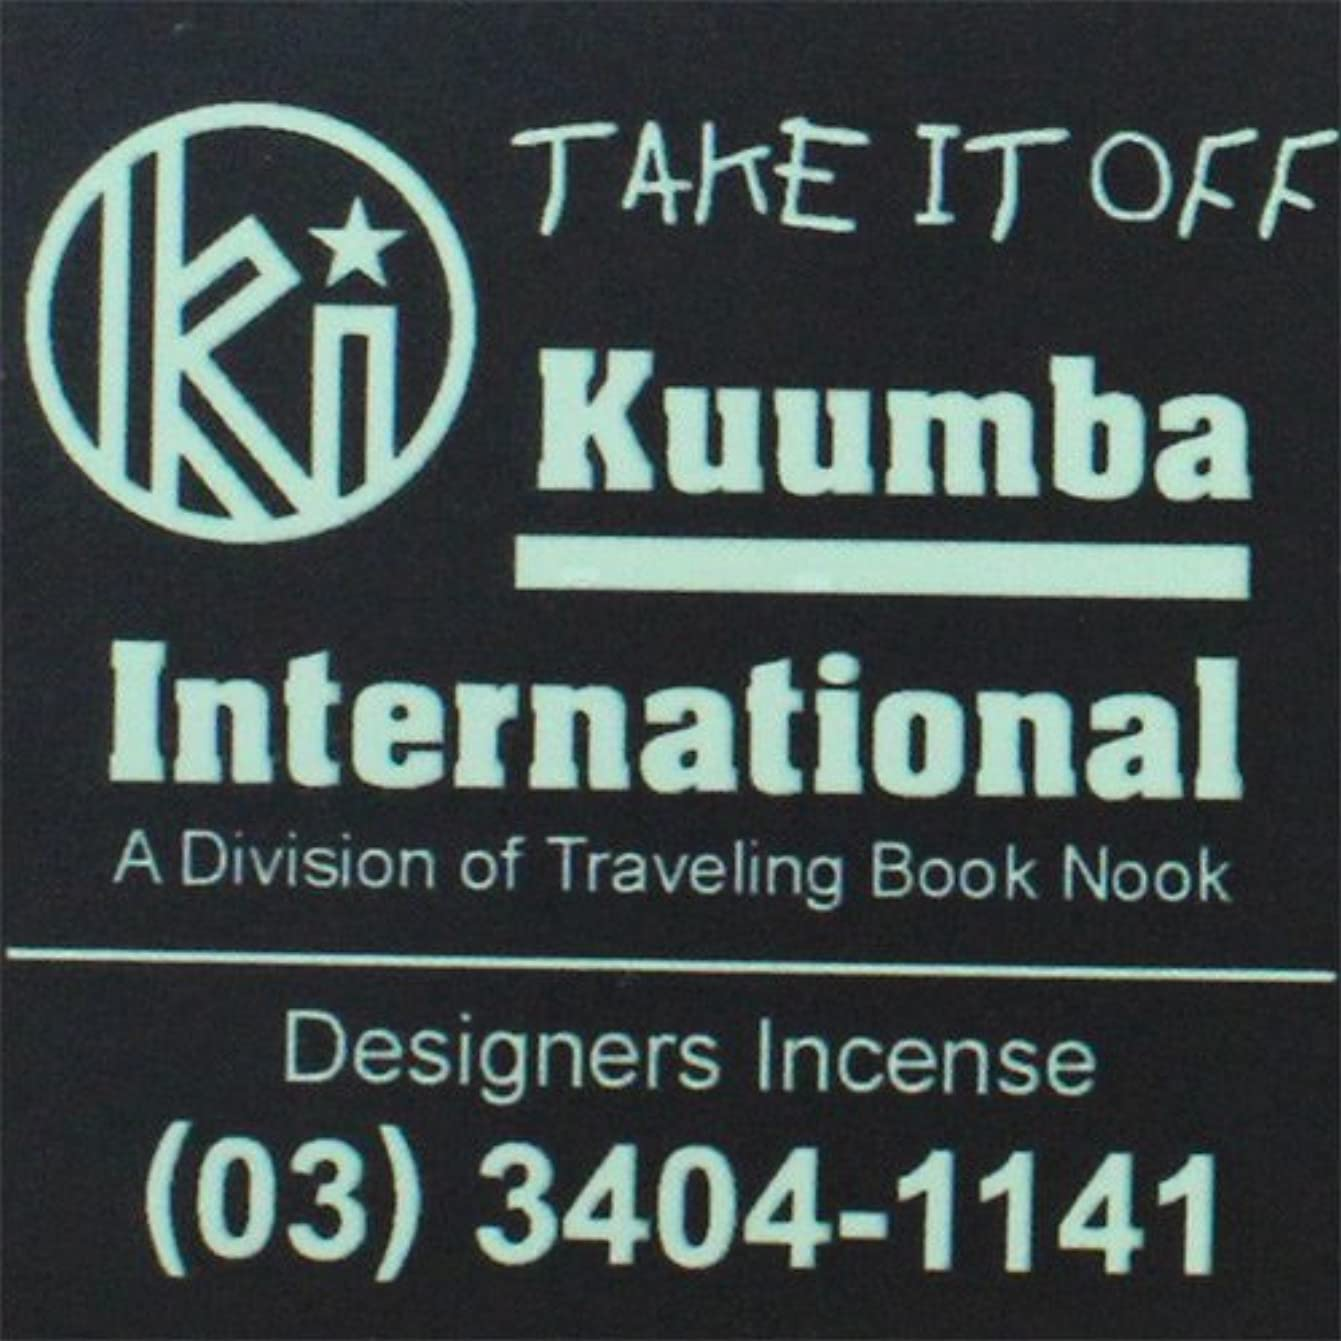 八探検重量KUUMBA / クンバ『incense』(TAKE IT OFF) (Regular size)